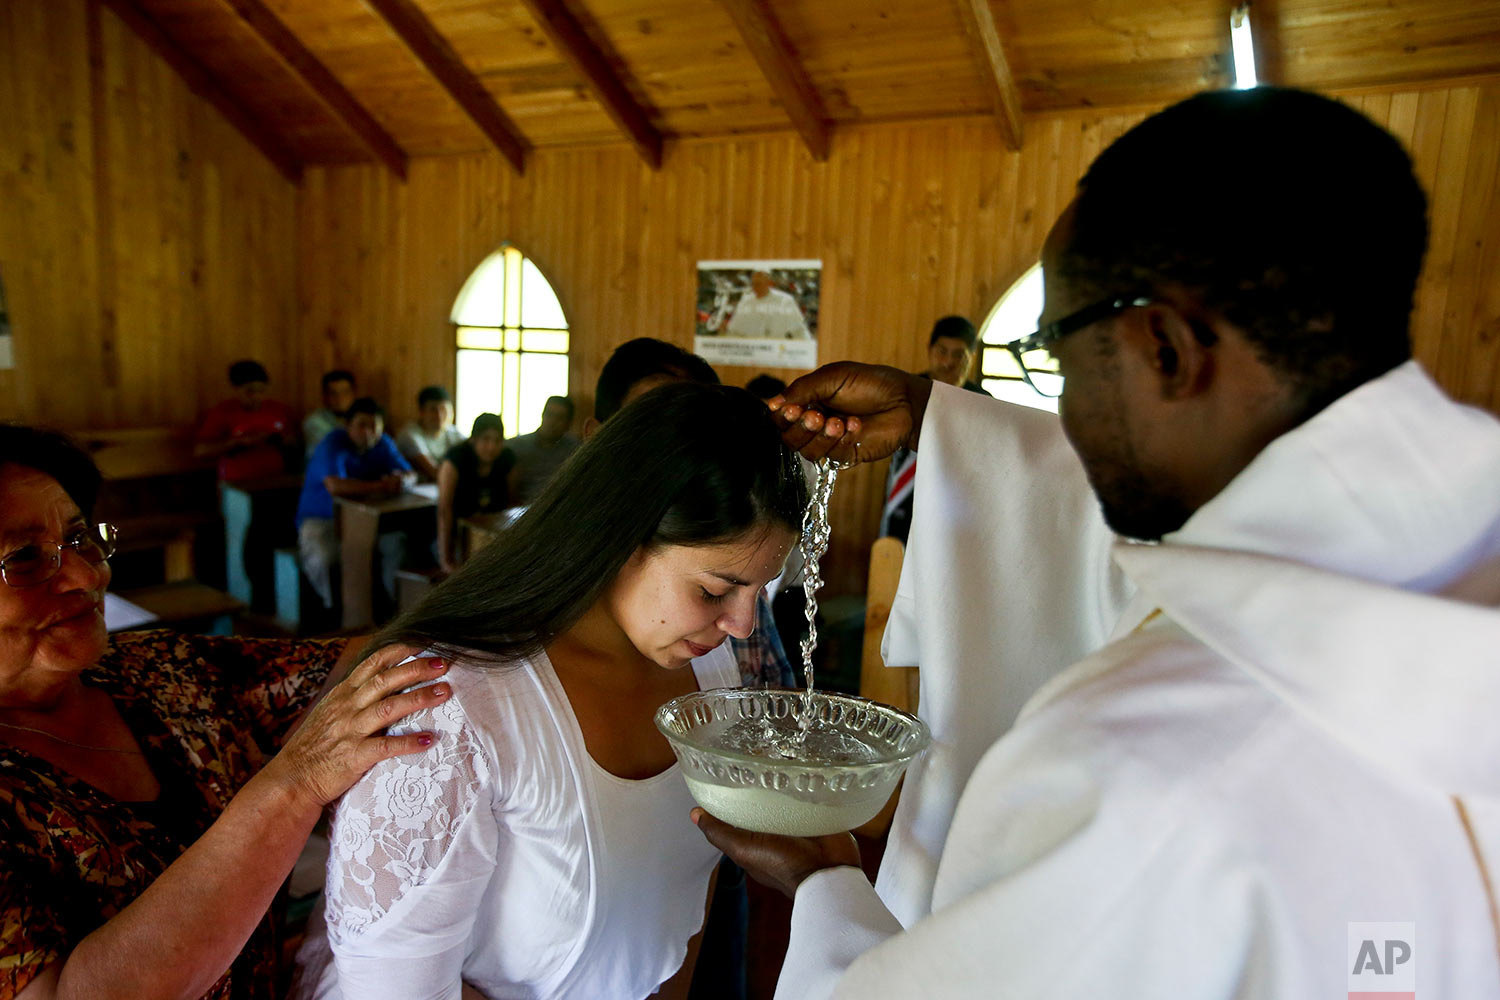 In this Sunday, Jan. 7, 2018 photo, Priest Claude Yves Dilayen baptizes a woman in the Mapuche community Newen Wenu Chau in Temuco, Chile, Sunday, Jan. 7, 2018.(AP Photo/Esteban Felix) |  See these photos on AP Images